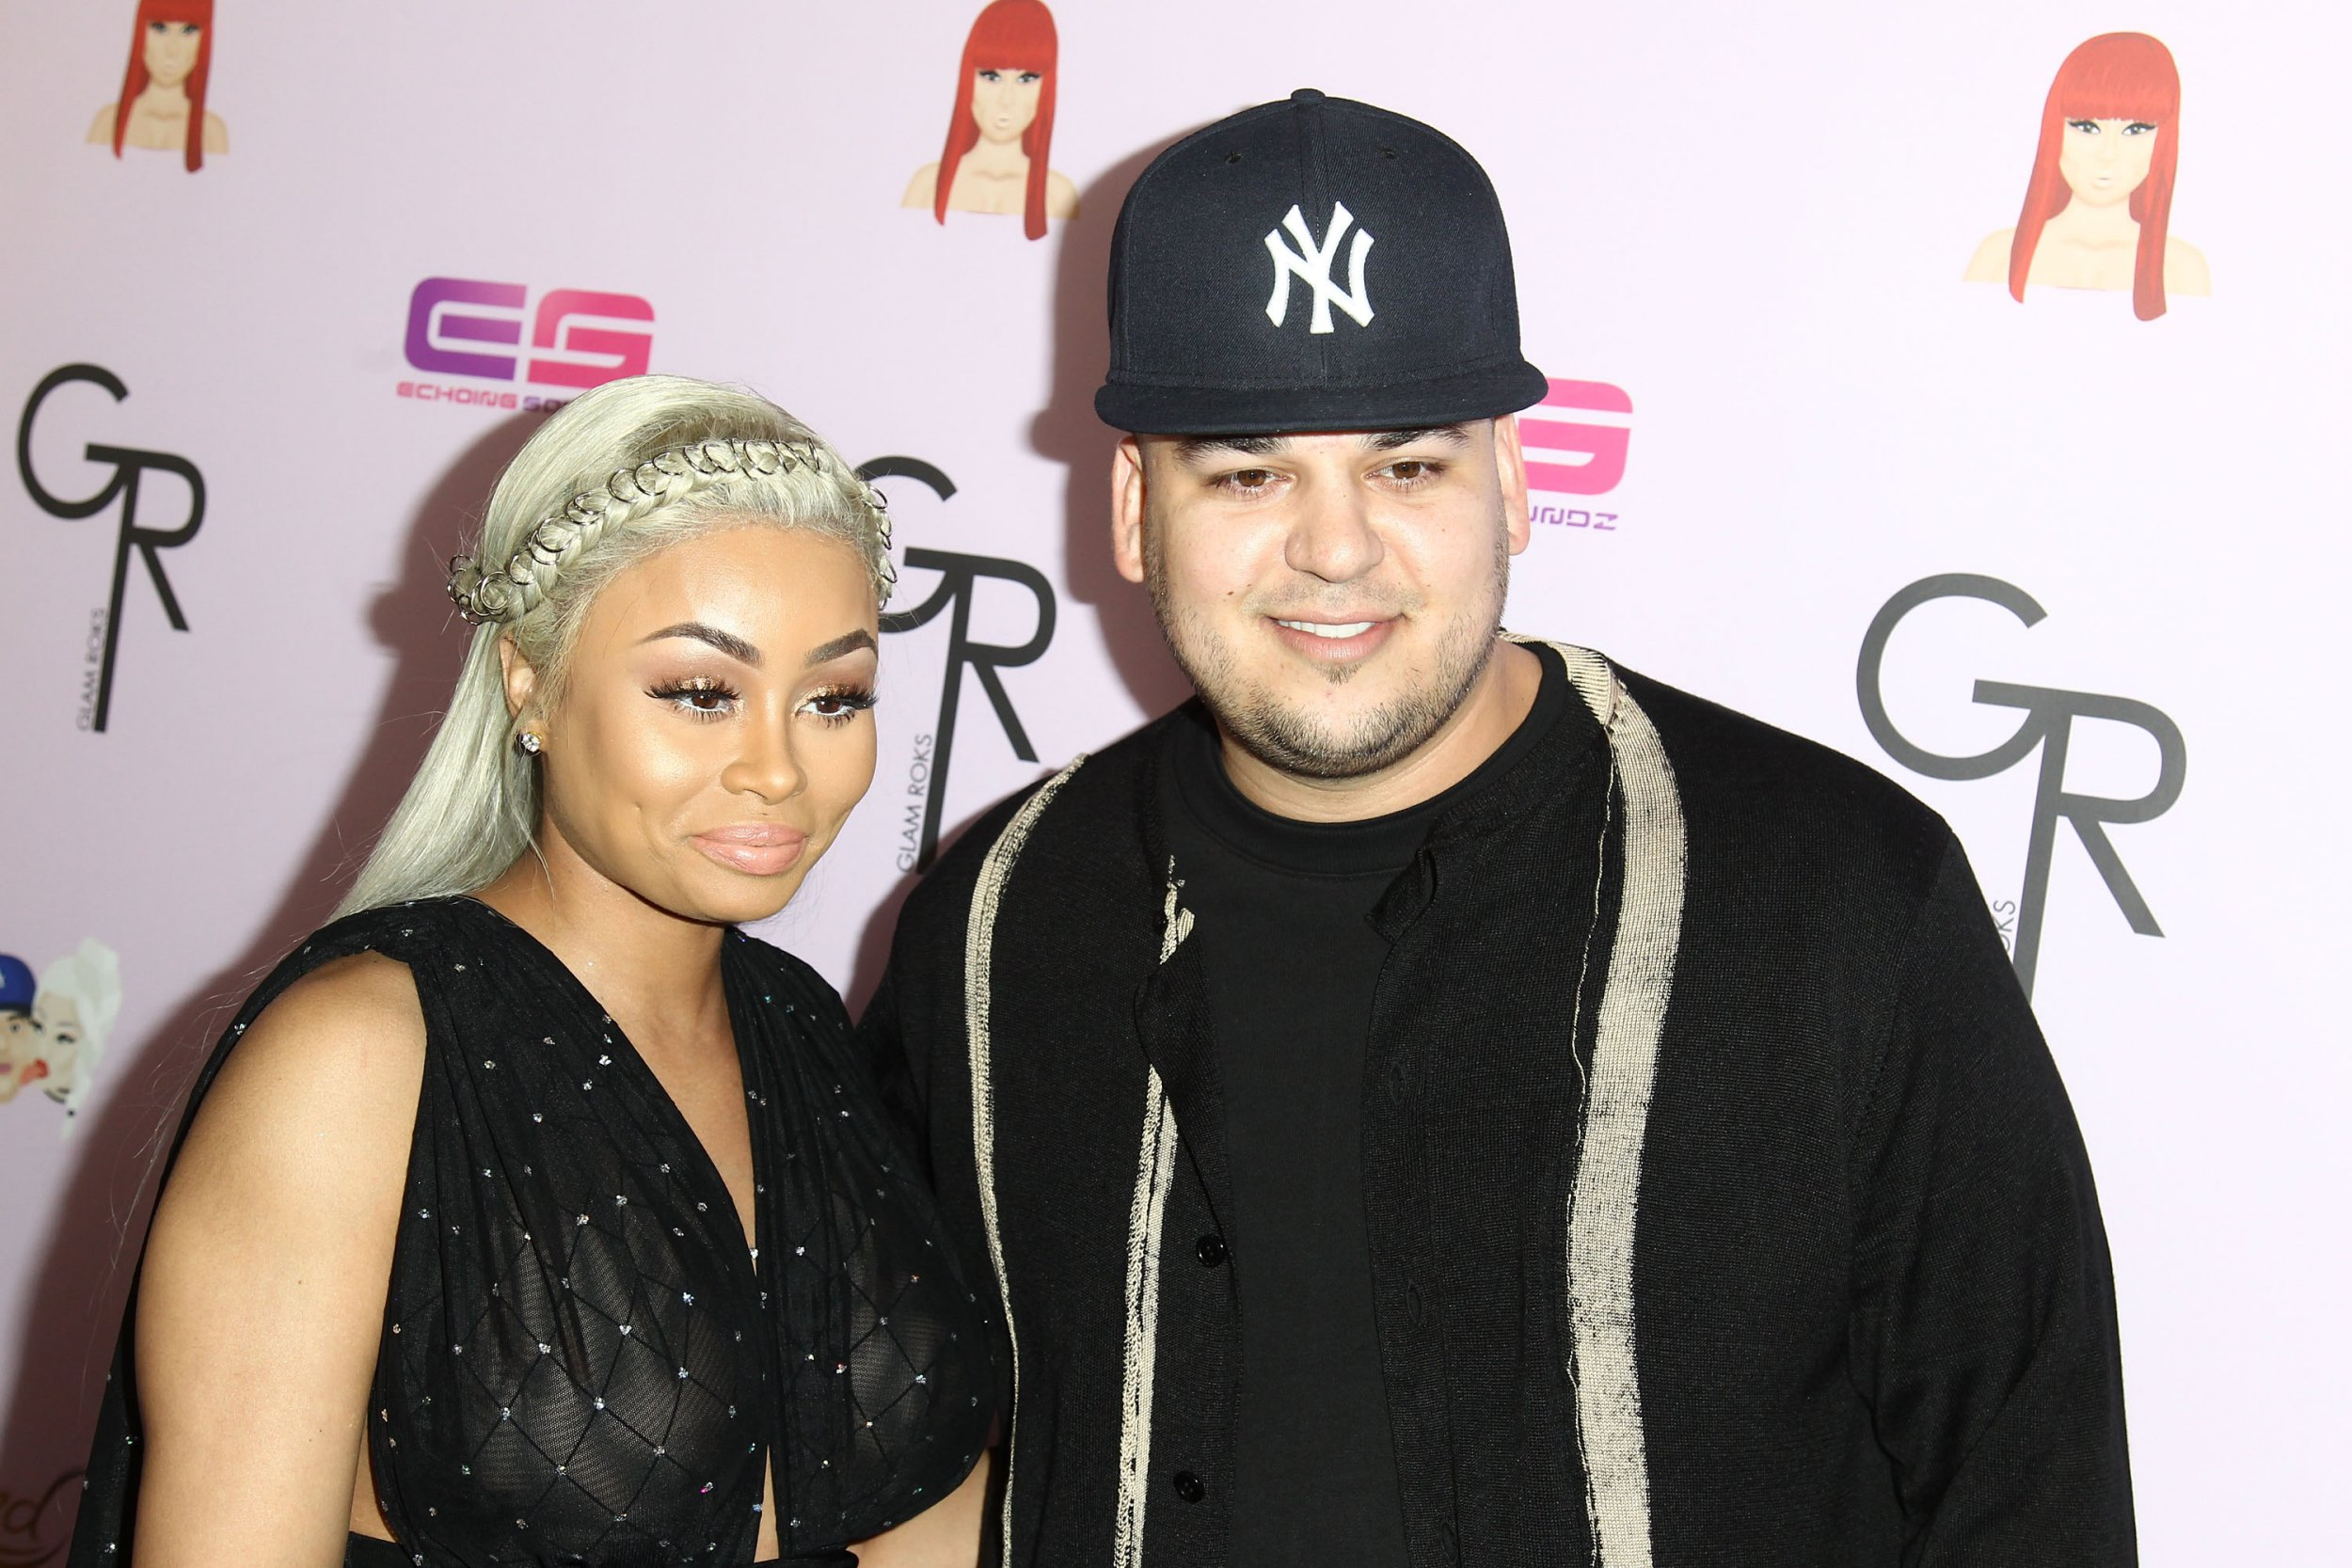 Rob Kardashian and ex Blac Chyna come to 50/50 custody agreement over daughter Dream